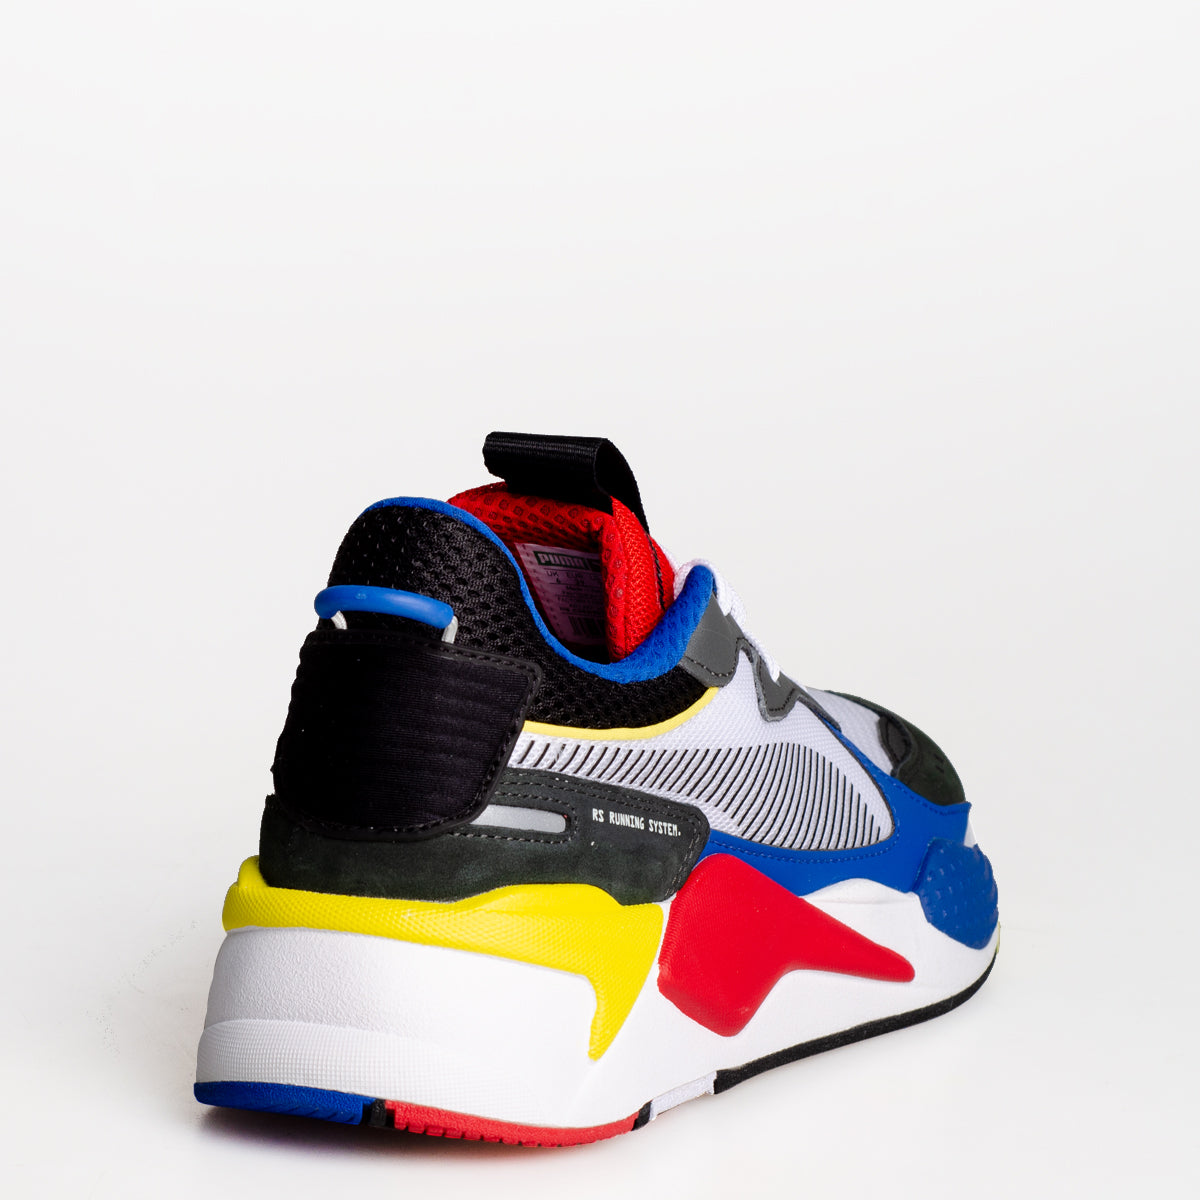 puma sneakers toy